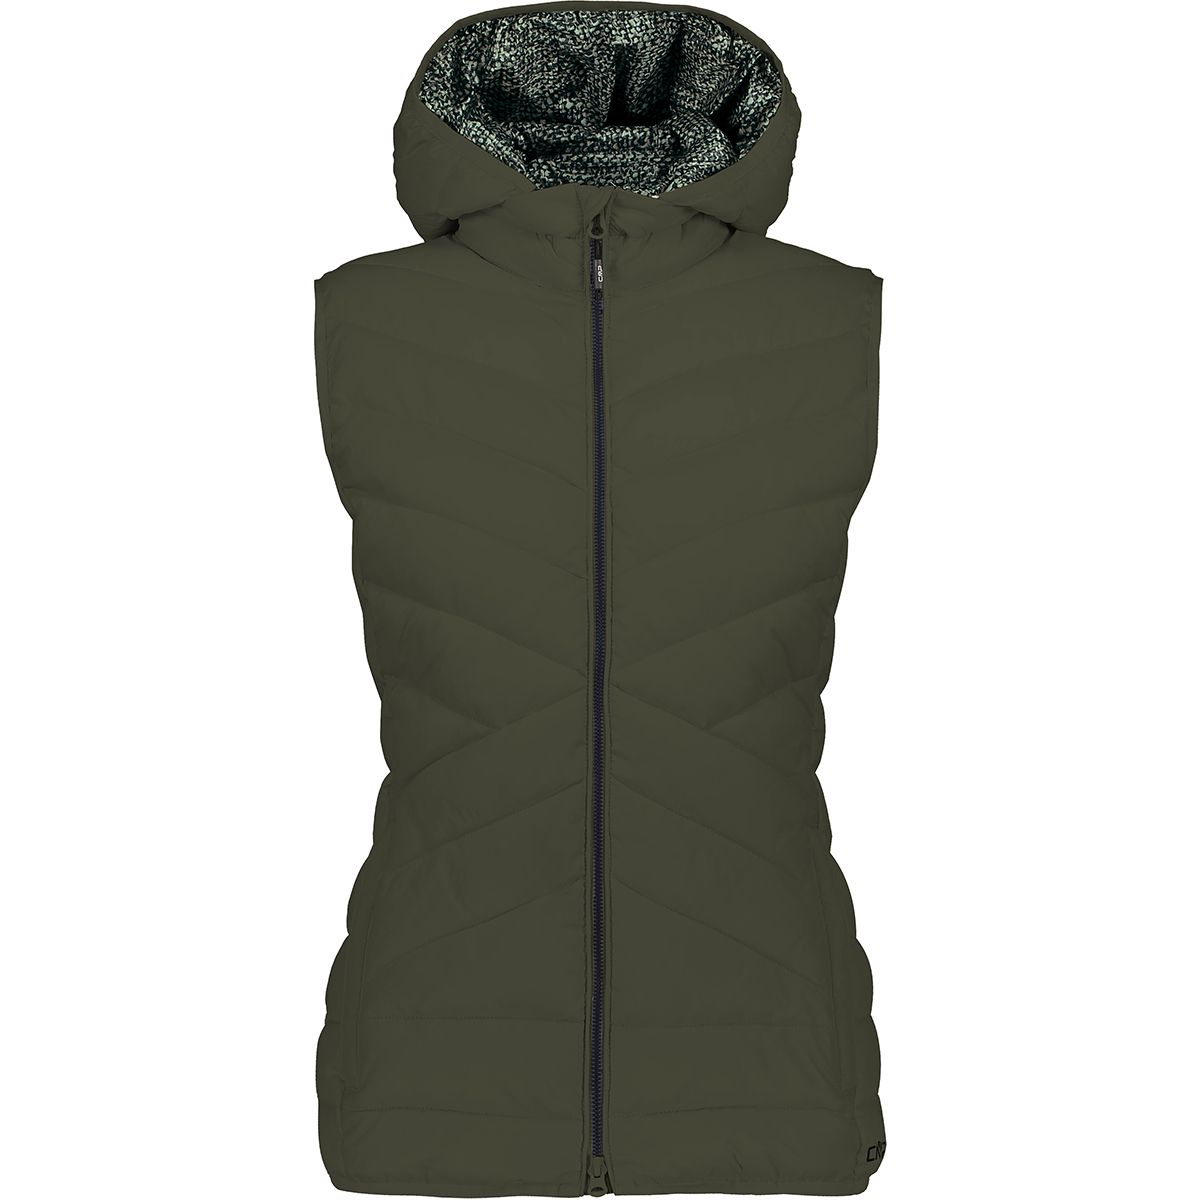 CMP Damen Zip Hoodie Weste (Größe XL, Oliv) | Isolationswesten > Damen